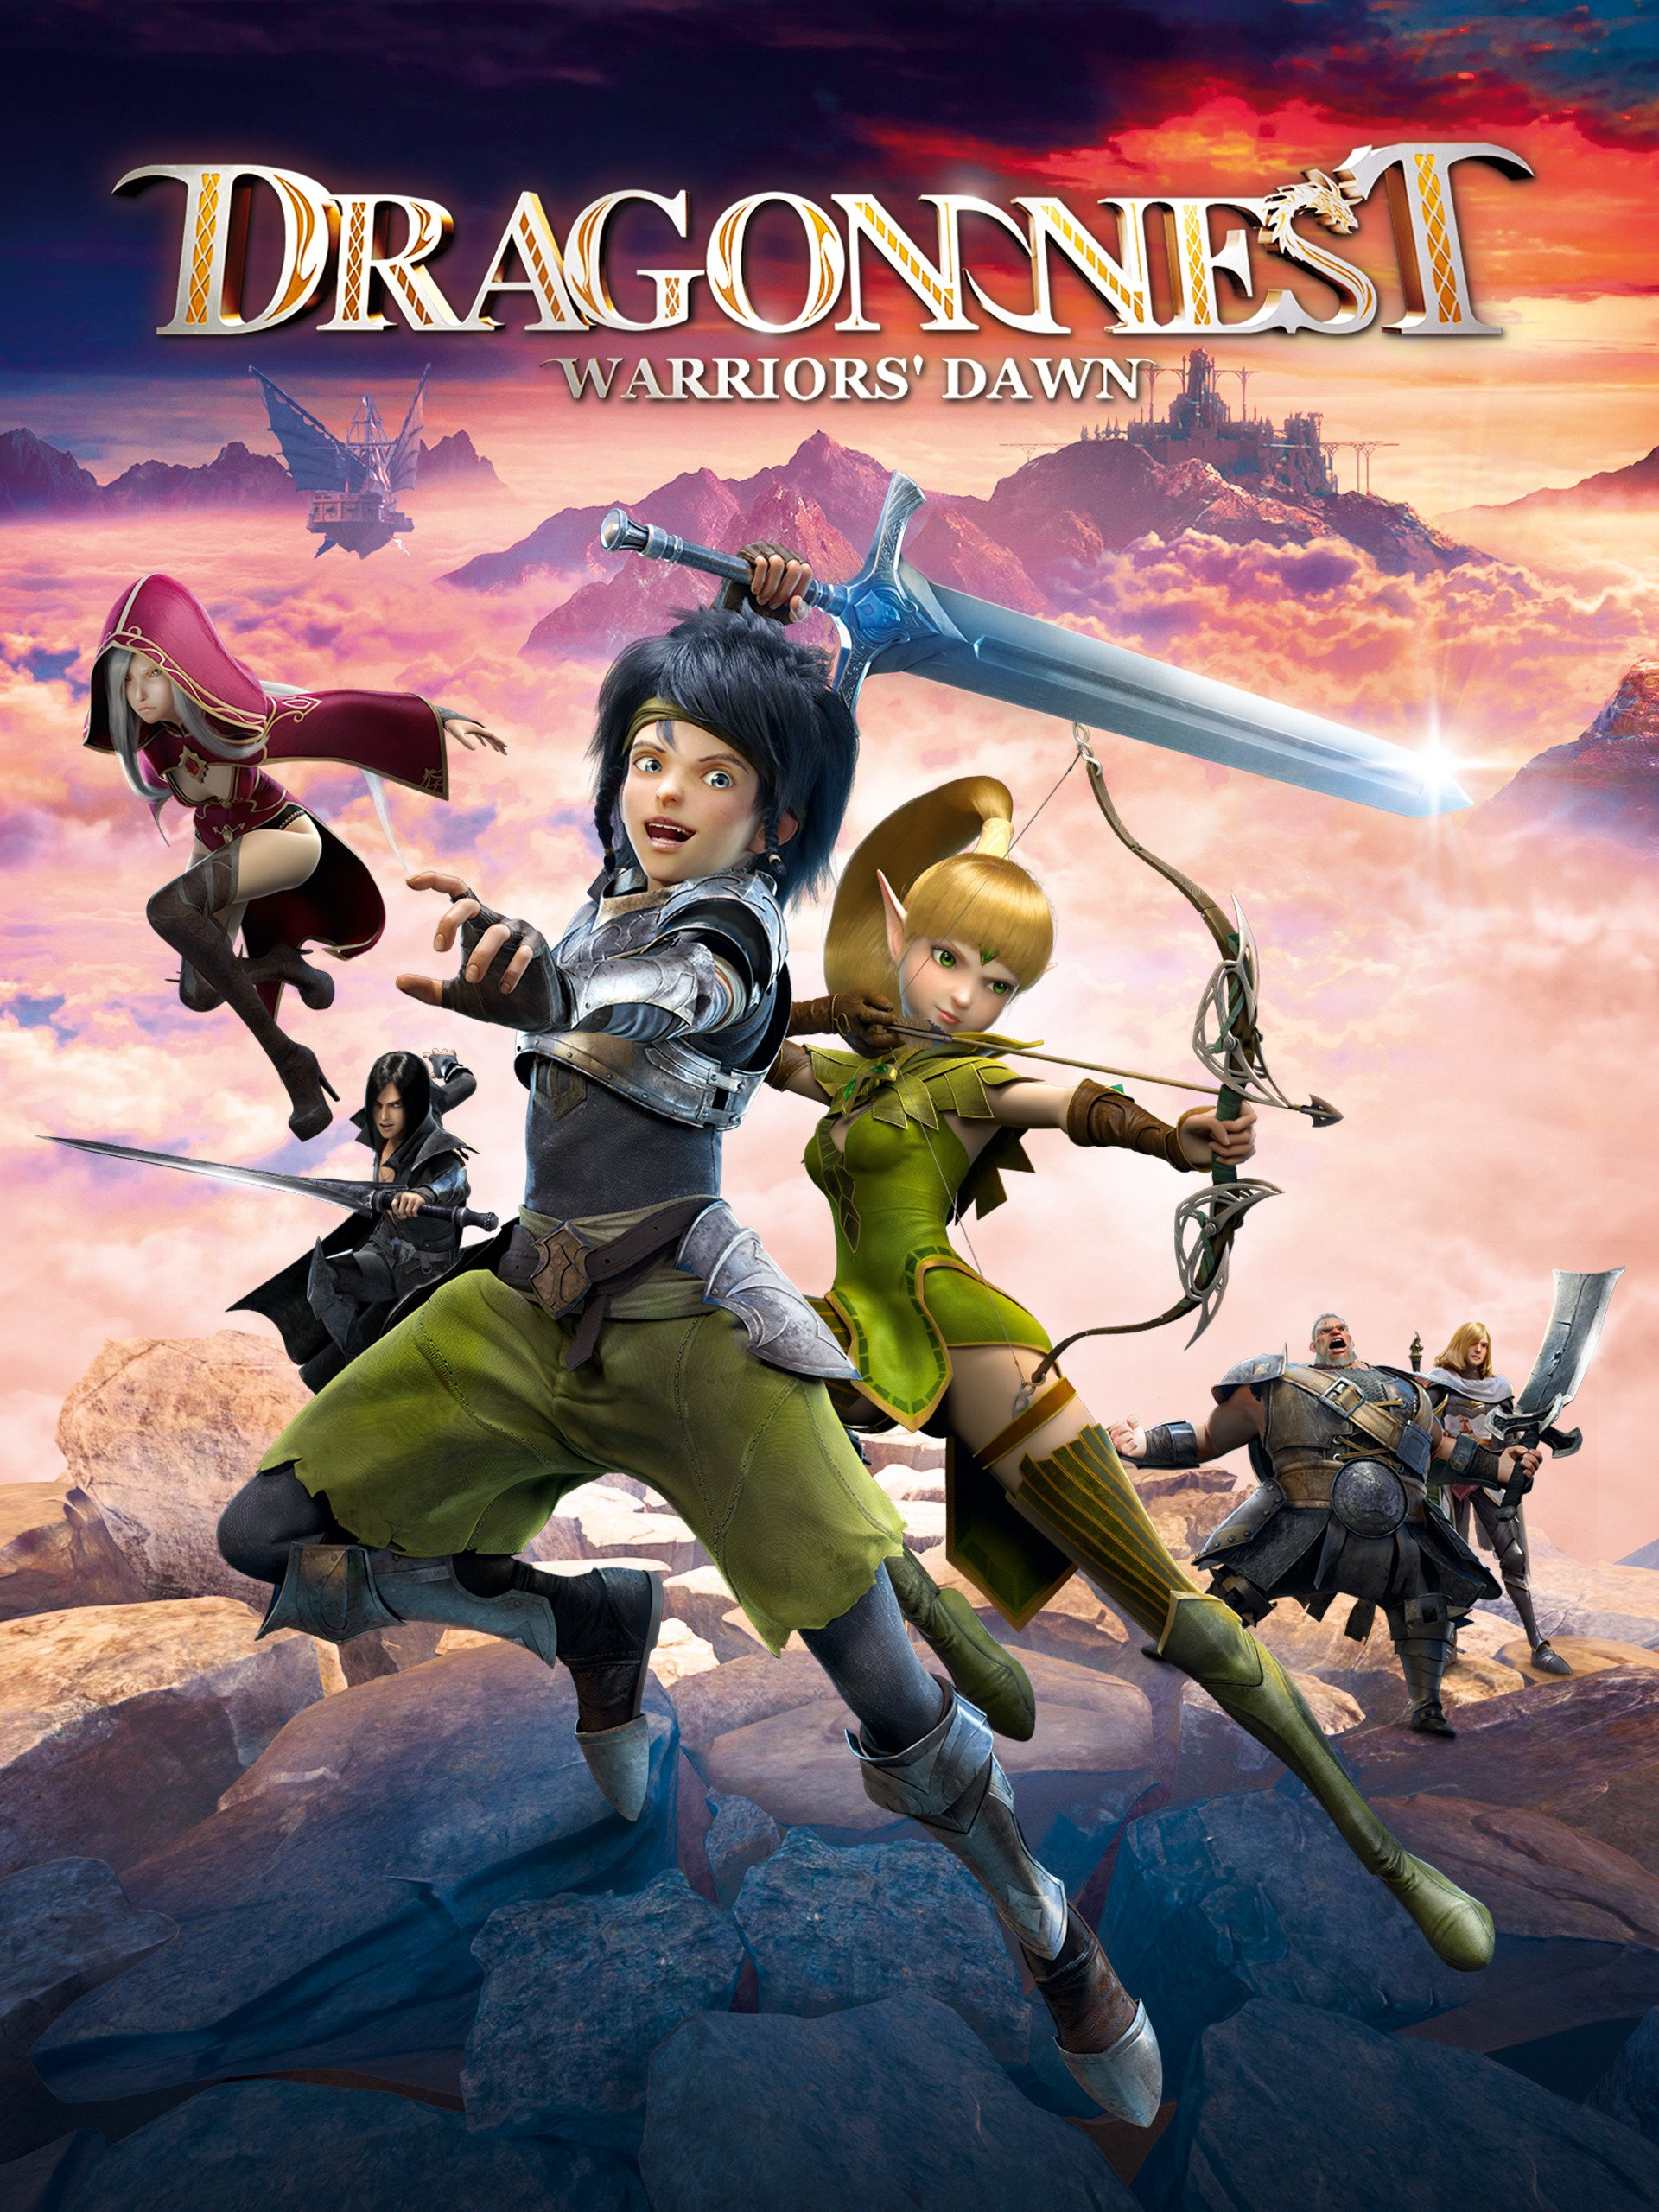 Dragon Nest Warrior's Dawn 2014 Hindi Dual Audio 720p BluRay ESubs 840MB Download